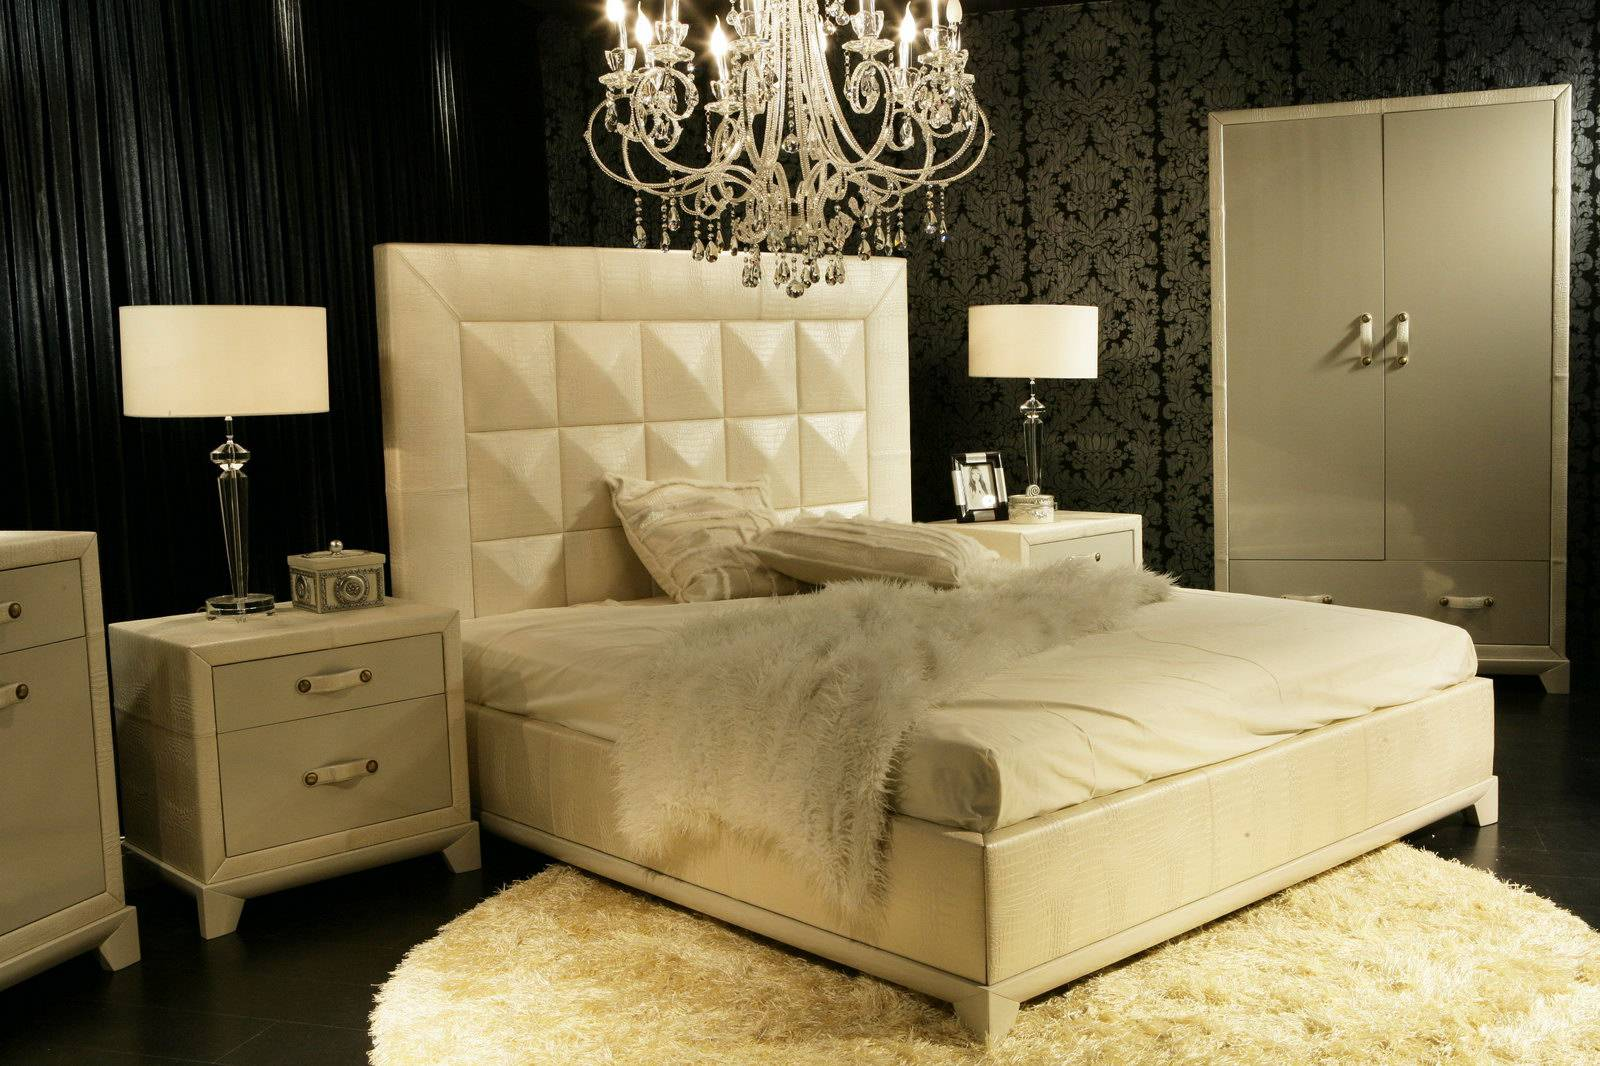 Leather Bed With Gold Veined Bedside Cabinets